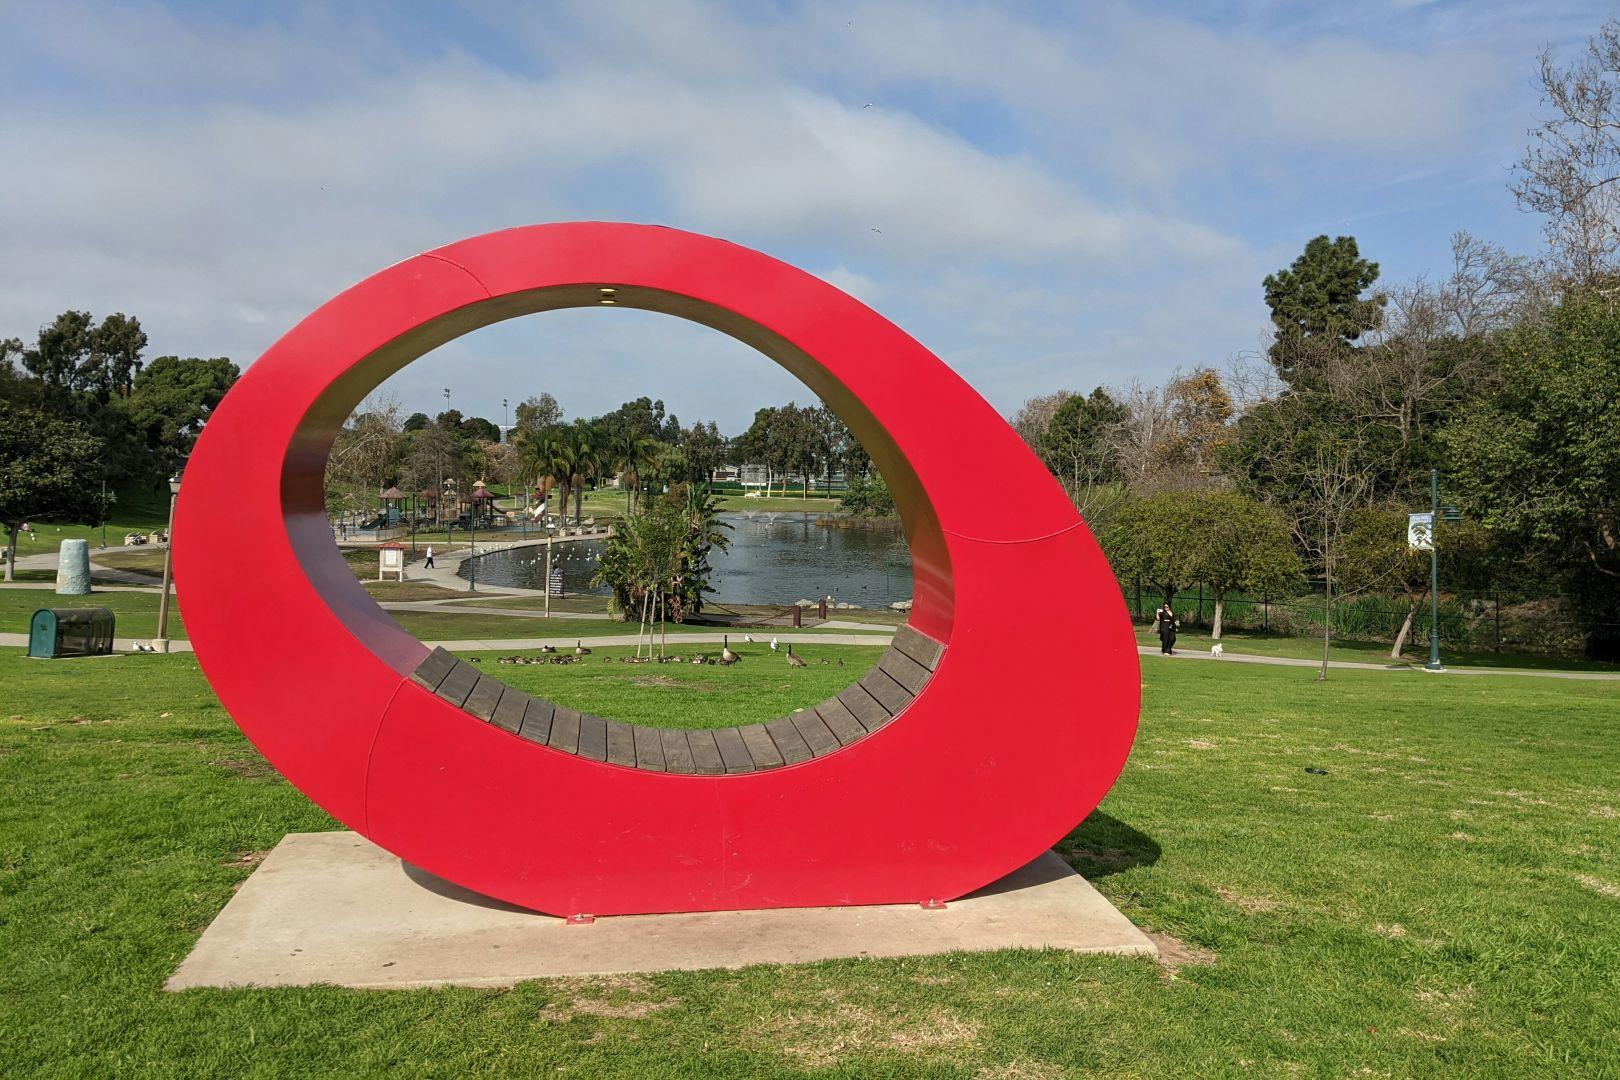 When did they install the Guardian of Forever at this park? #park #gateway #sculpture #pond #StarTrek #CityOnTheEdgeOfForever